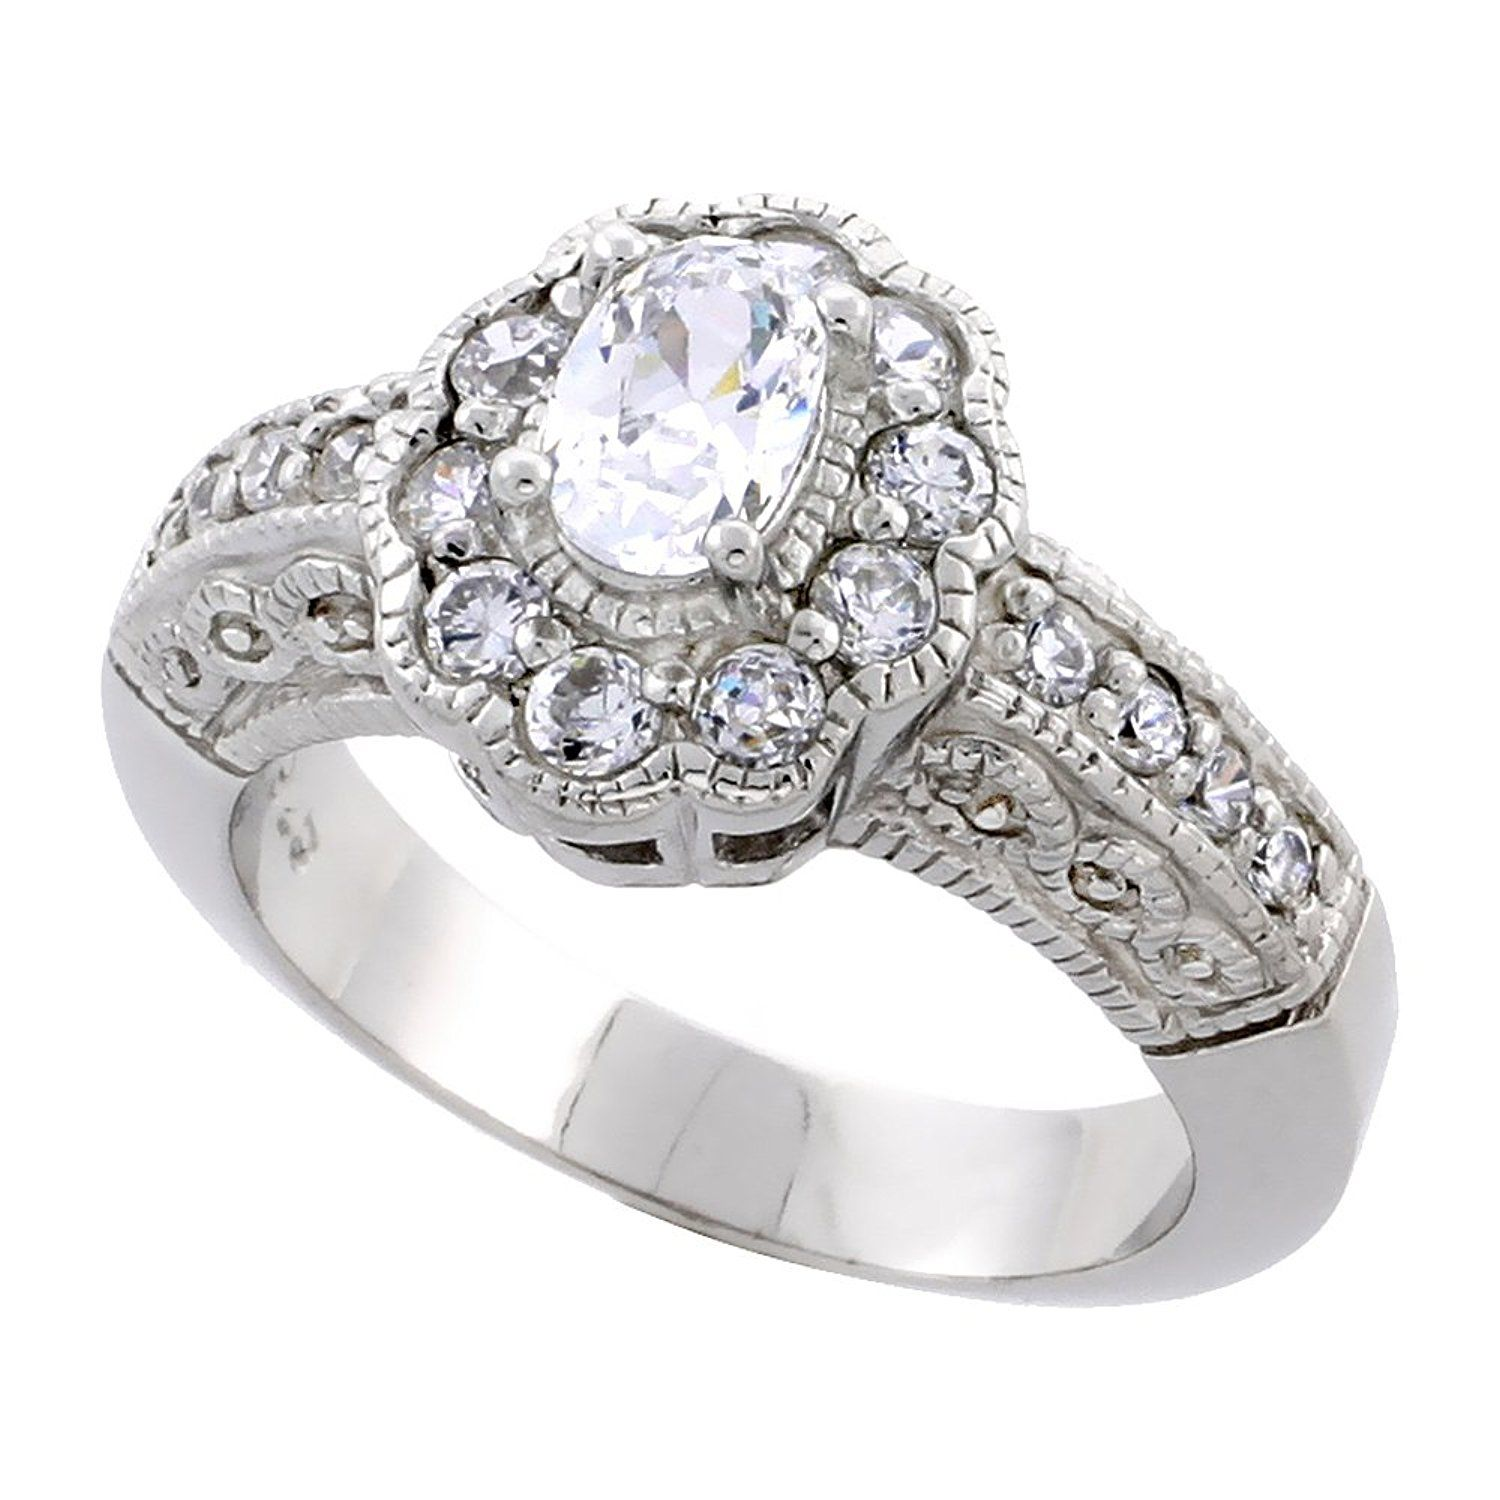 Sterling Silver Vintage Style Flower Halo Cubic Zirconia